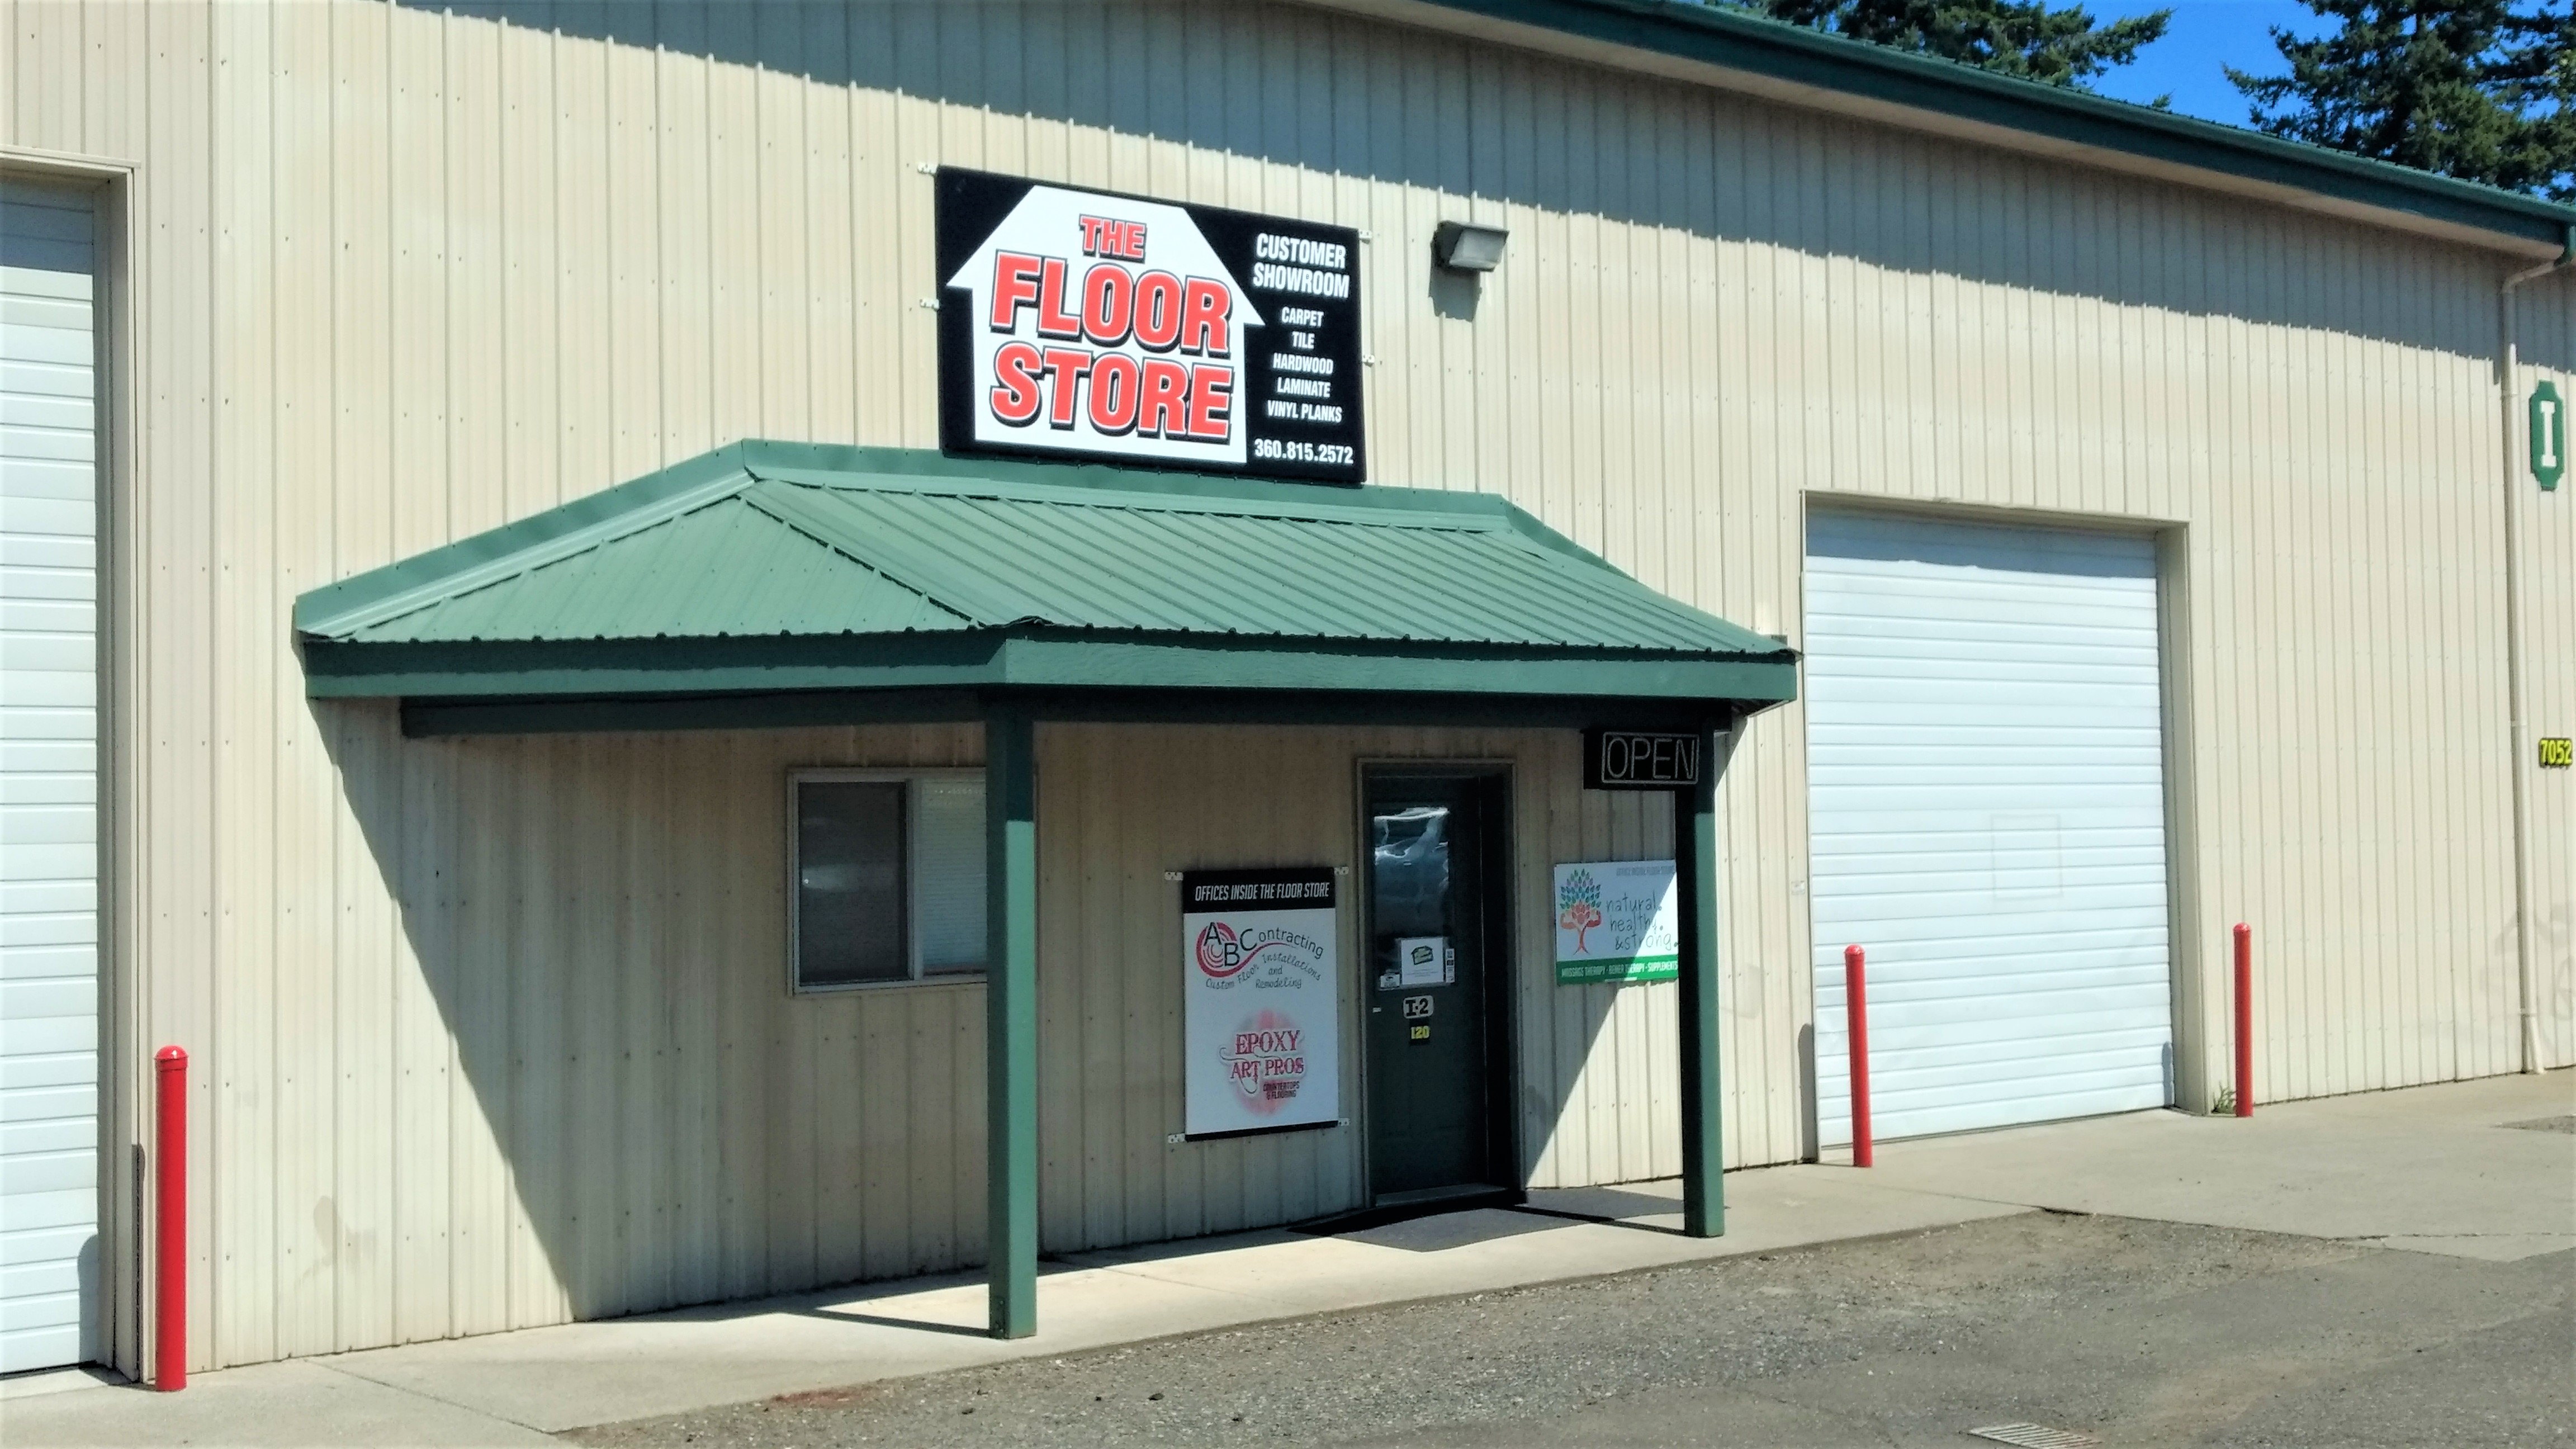 Exterior of The Floor Store in Grandview Business Park (July 26, 2019). Photo: My Ferndale News